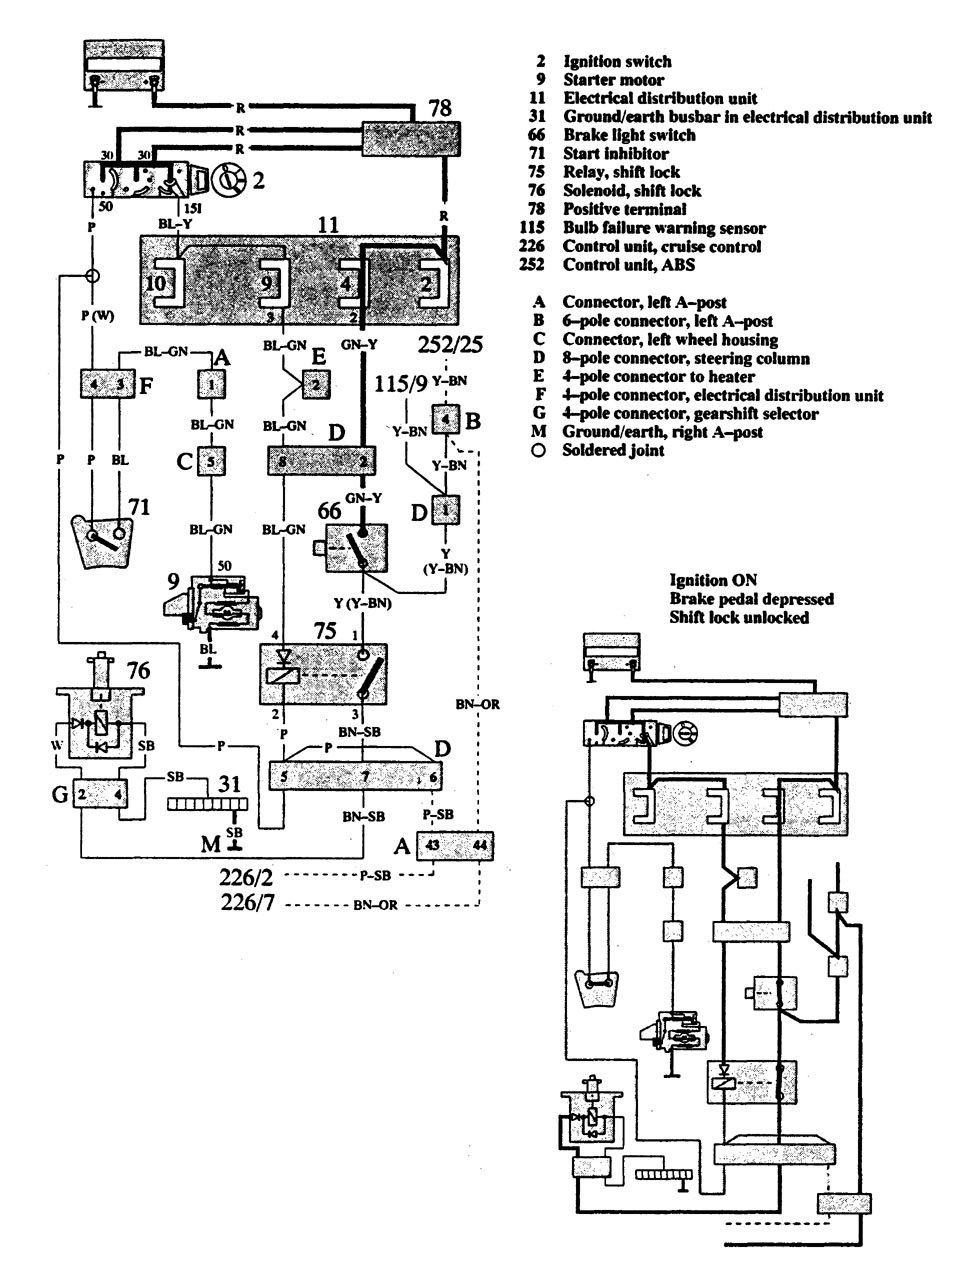 hummer h3 fuse diagram alternator